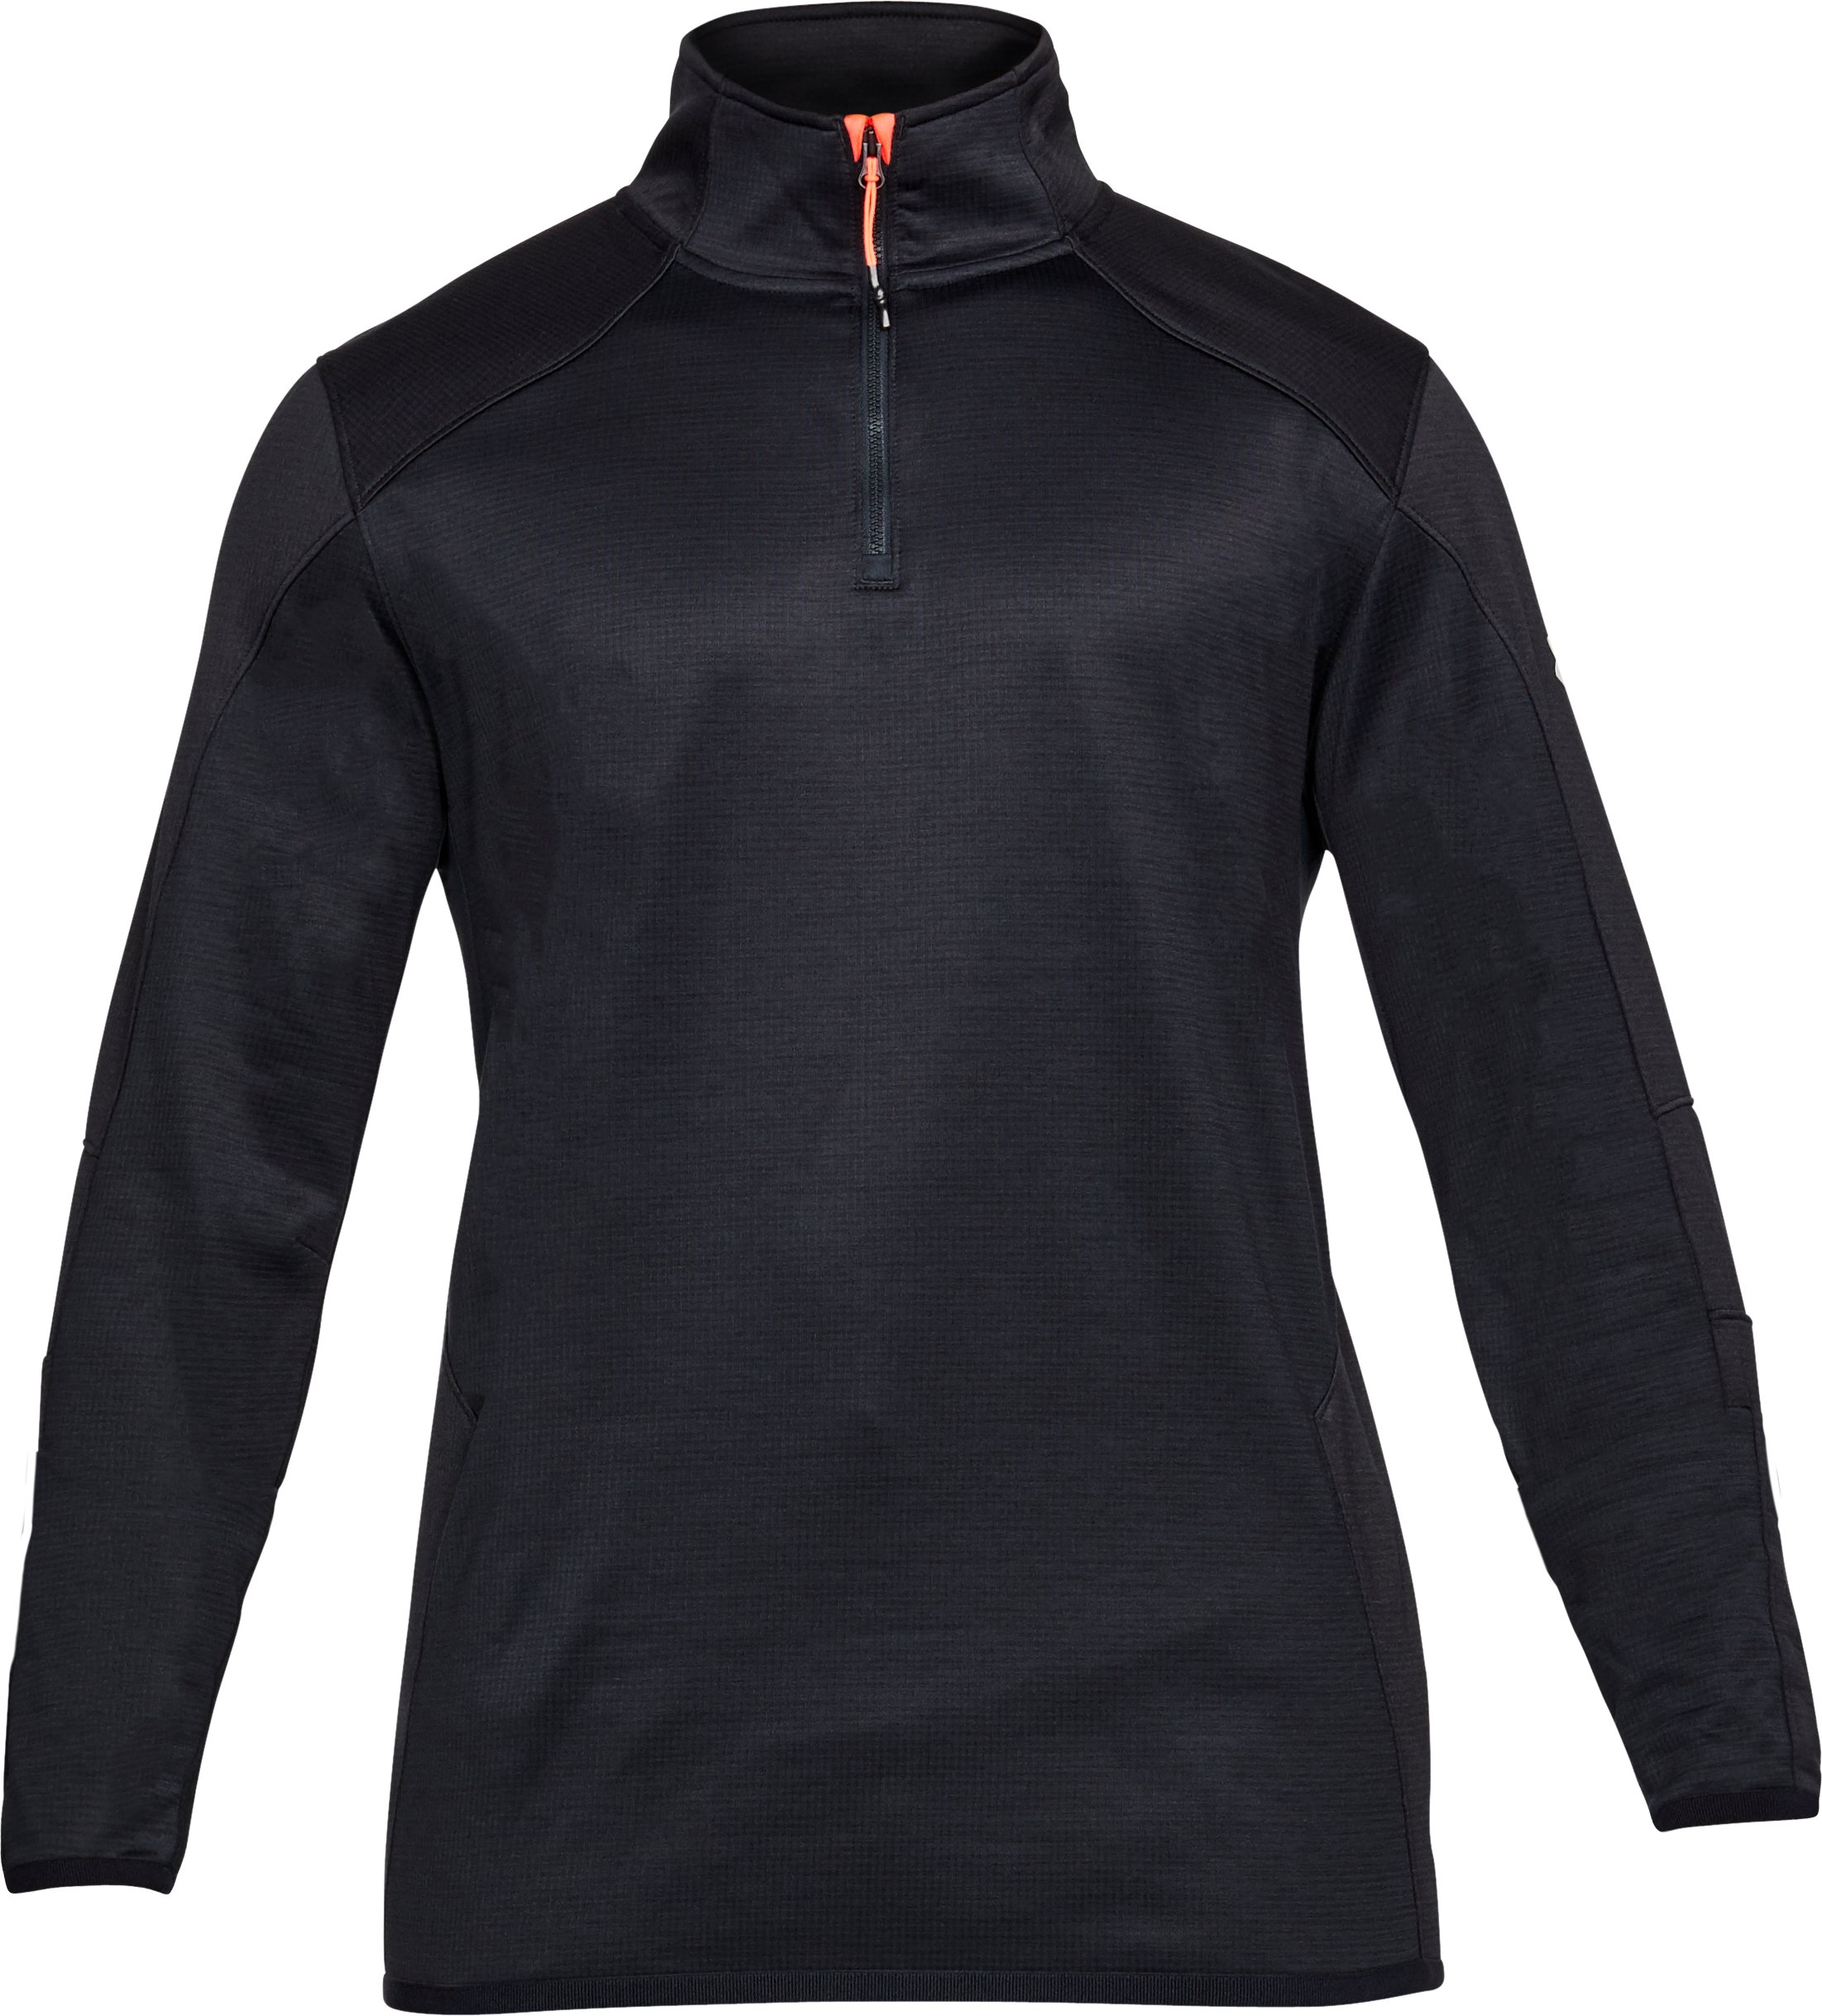 Men's ColdGear® Reactor Fleece ¼ Zip, ANTHRACITE,